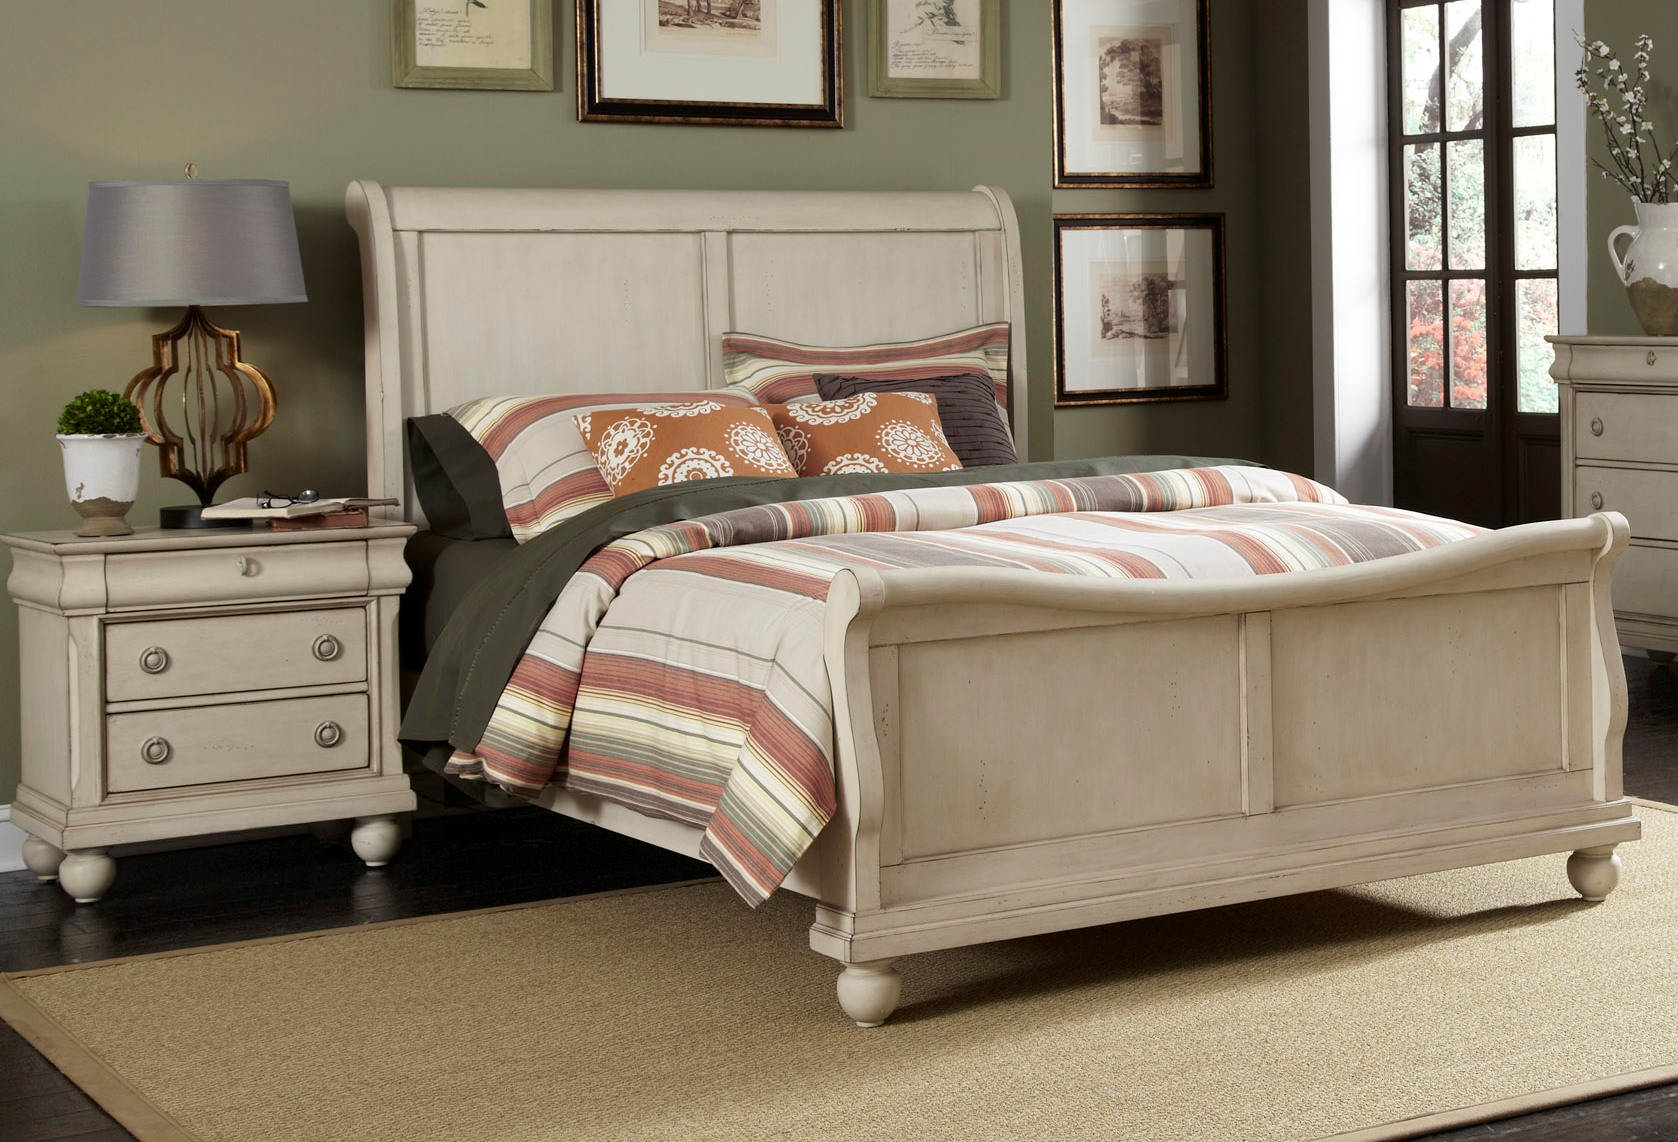 Liberty Traditions Ii White 2pc Bedroom Set With Queen Sleigh Bed